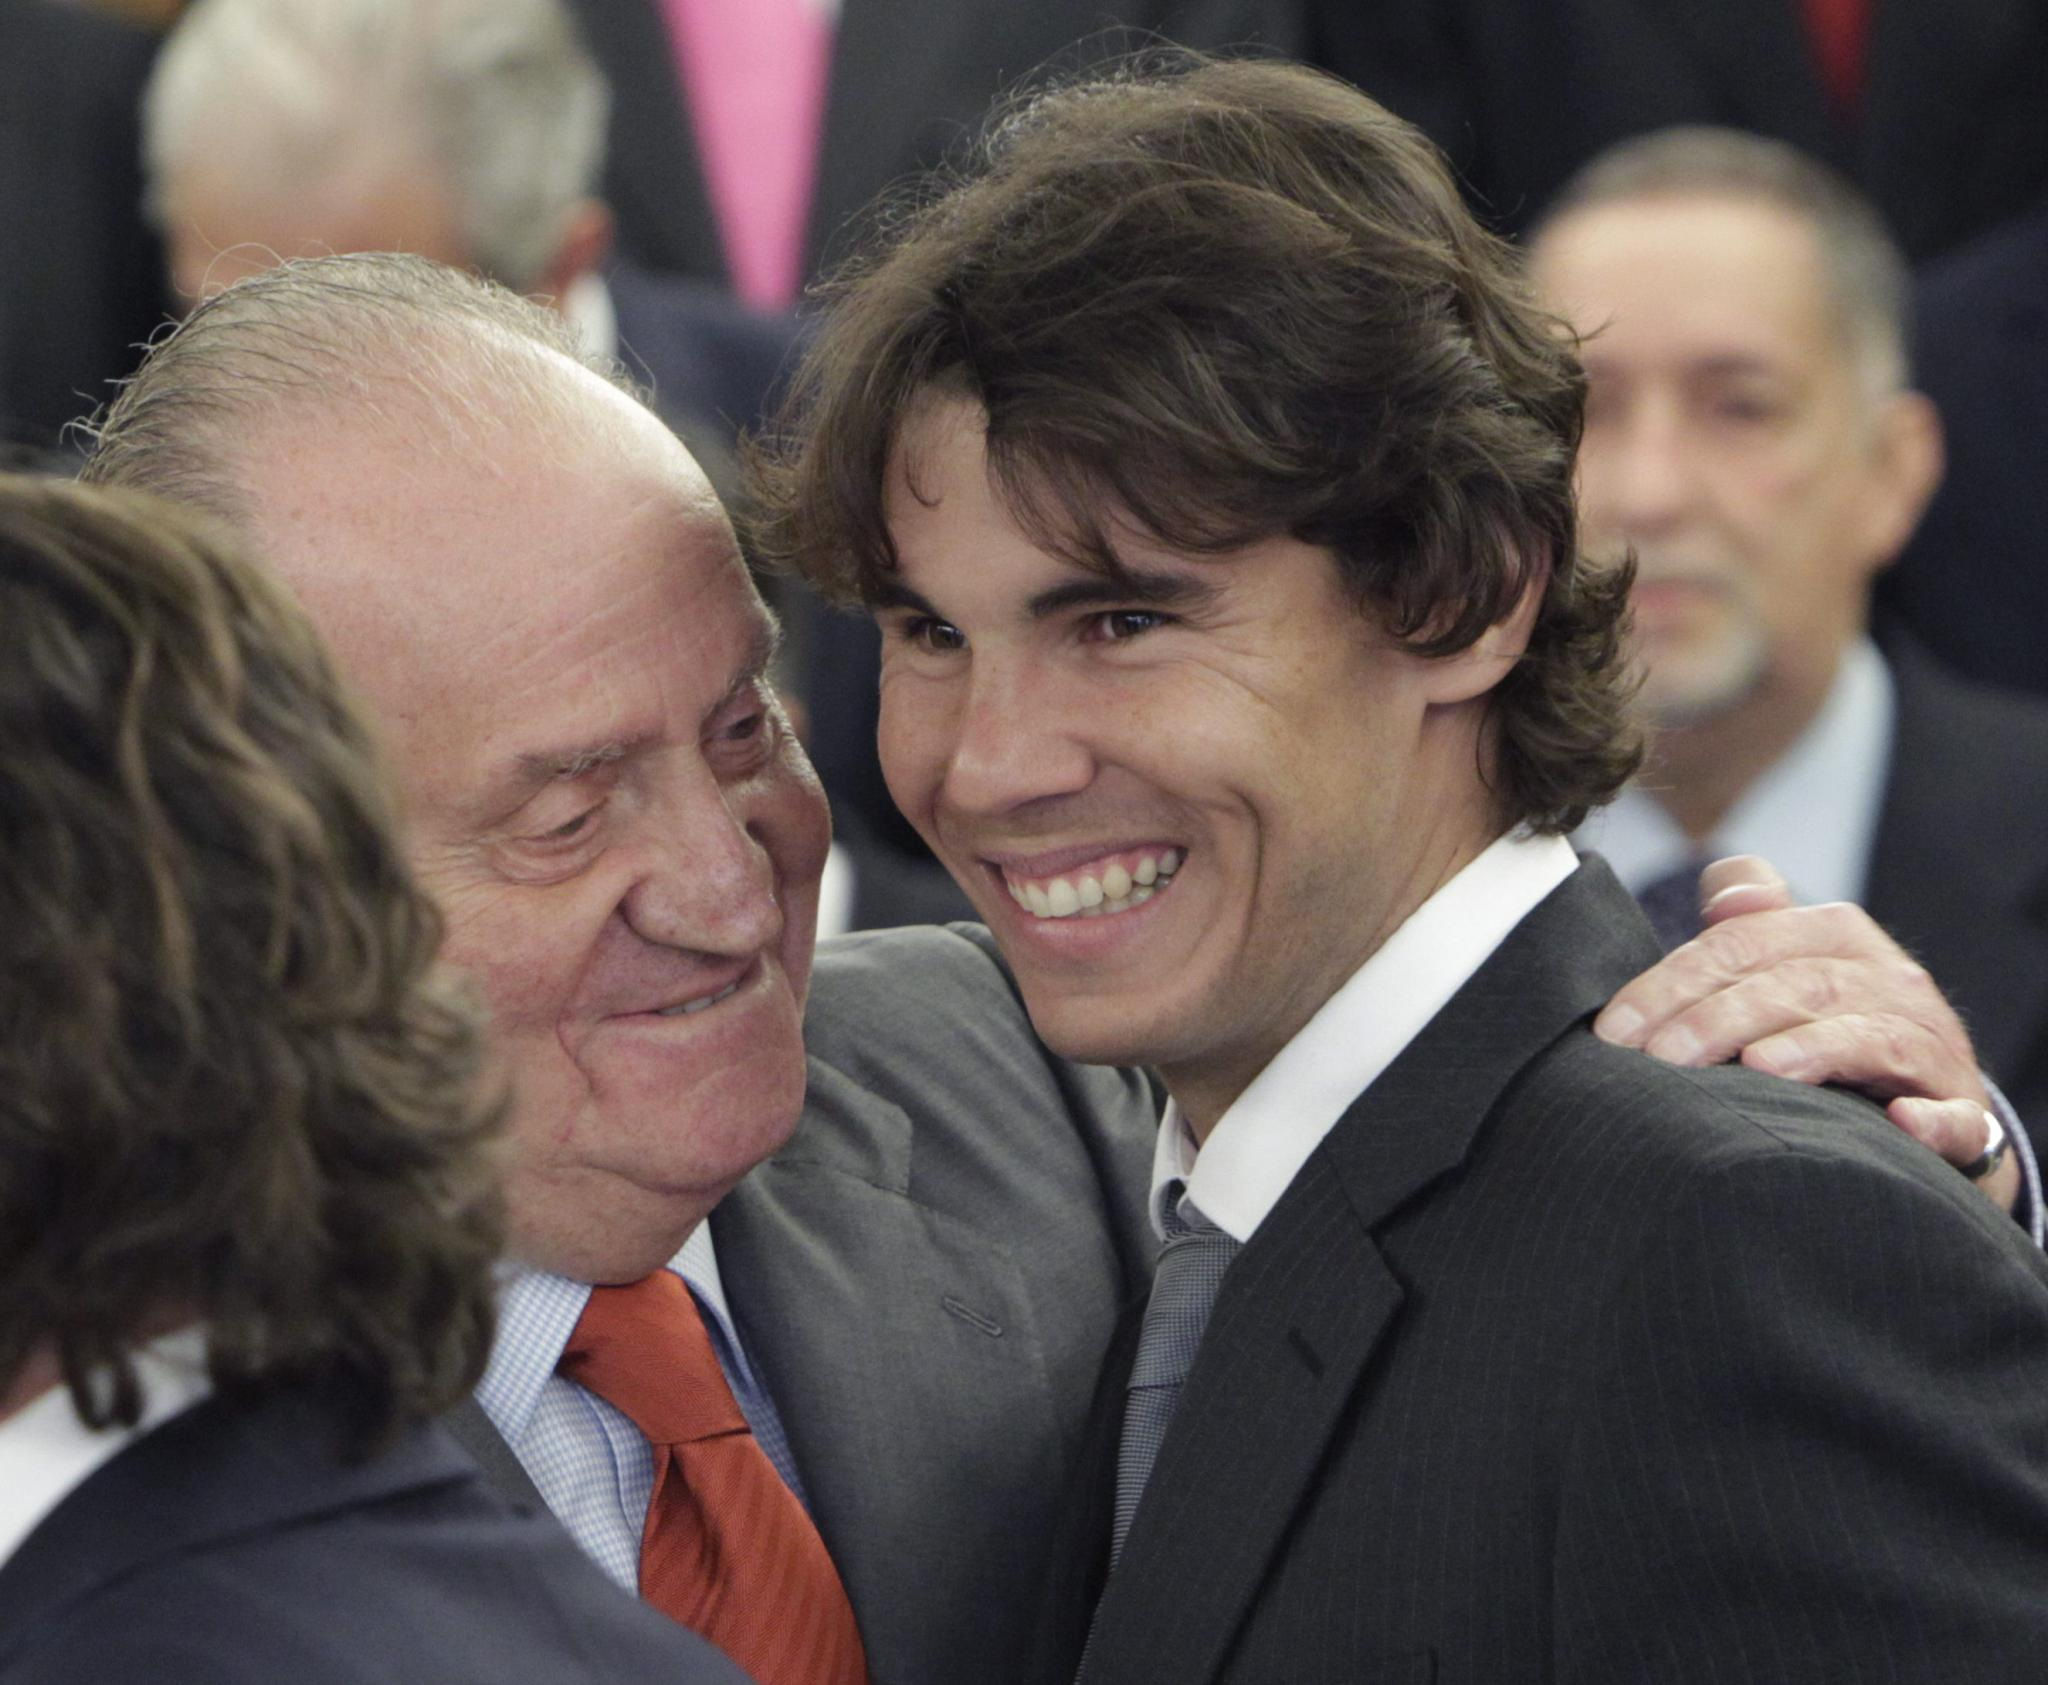 Rafael Nadal Gets Married to His Childhhod Partner Xisco Perello